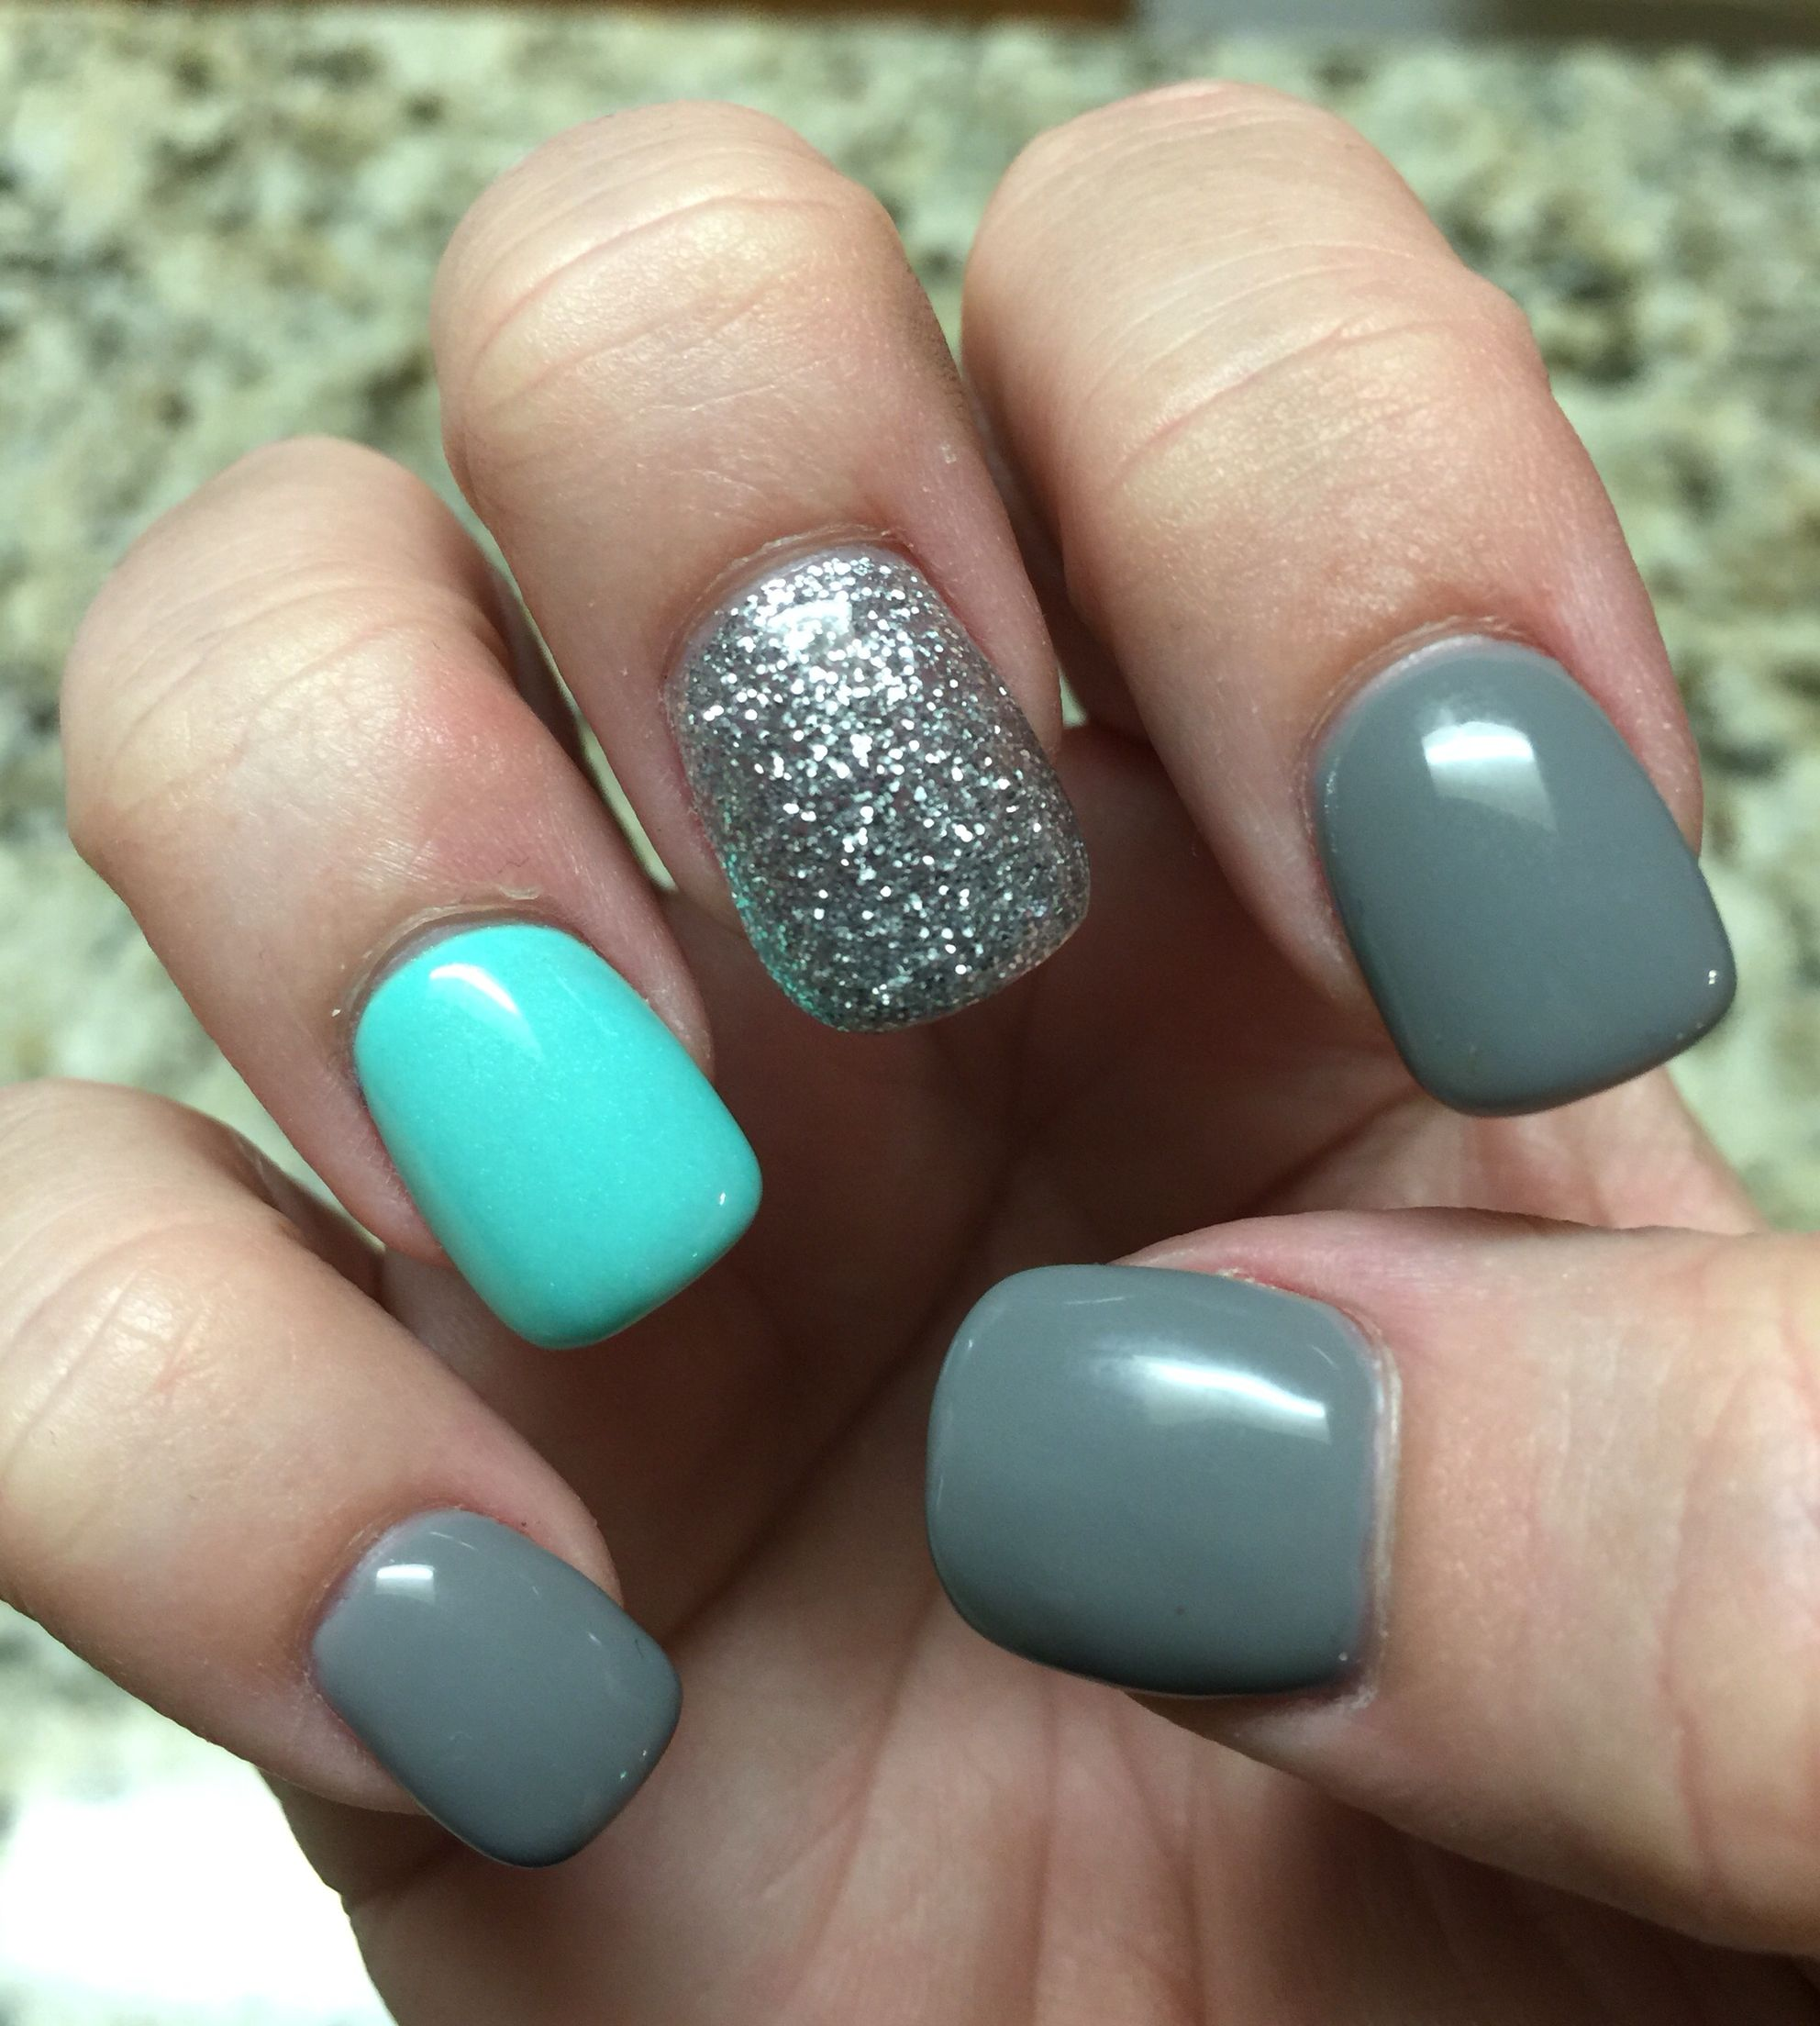 Grey glitter and turquoise nails nails pinterest glitter grey glitter and turquoise nails prinsesfo Images